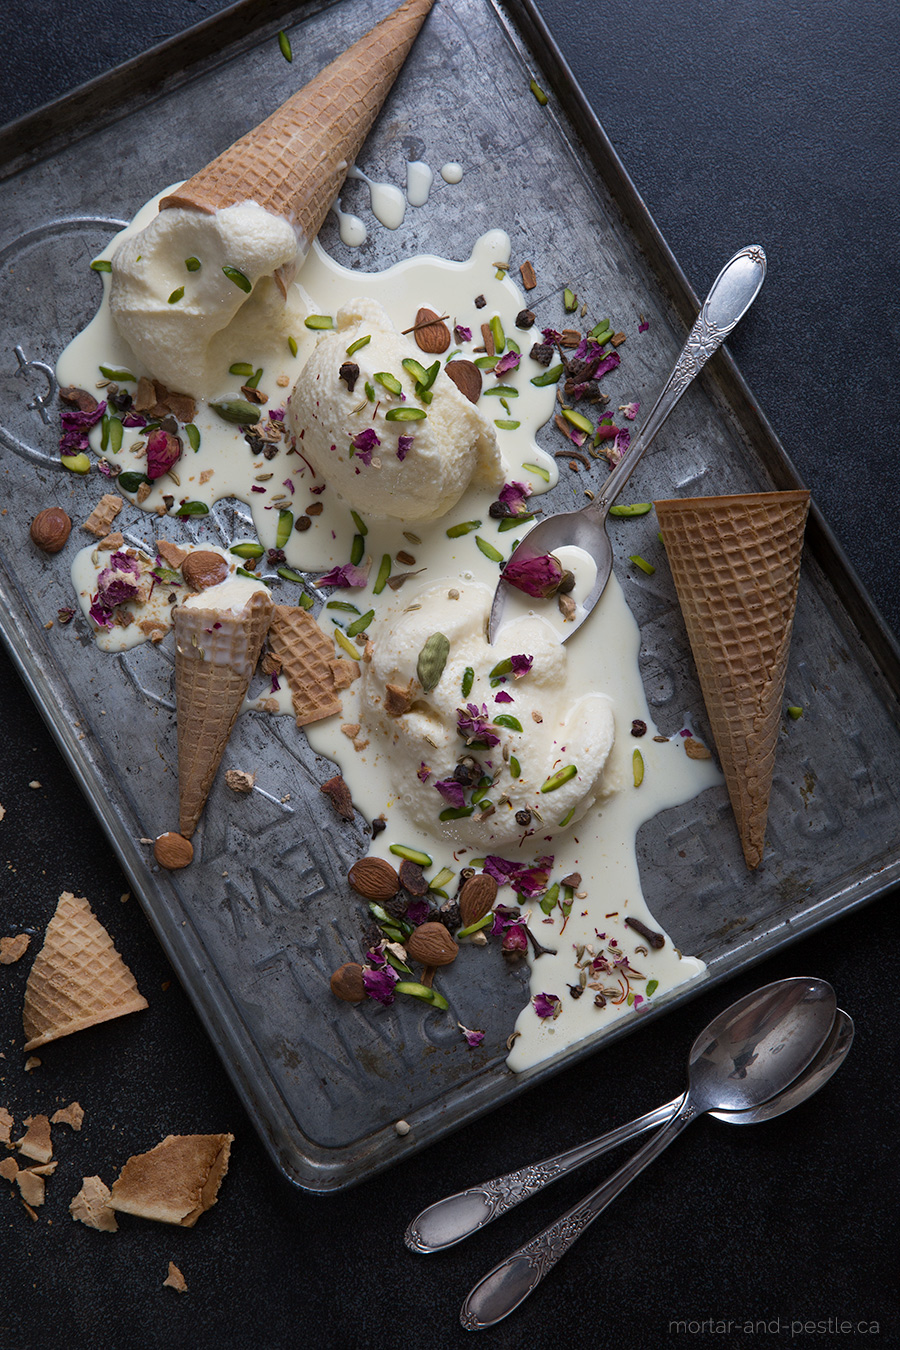 pistachio and apricot ice cream : mortar-and-pestle.ca